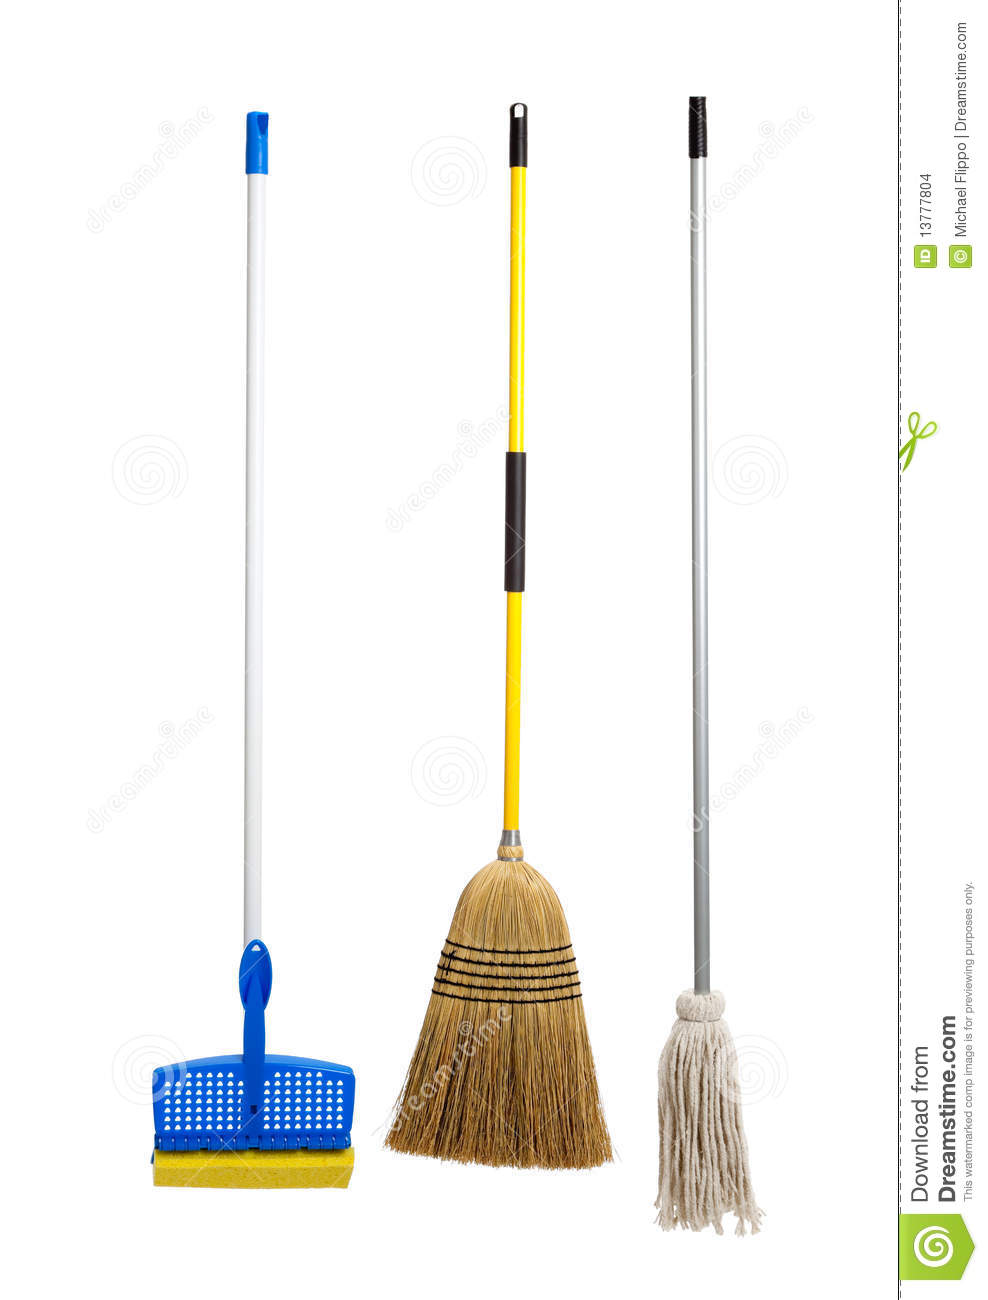 Blue and yellow sponge mop, broom and string mop on a white background ...